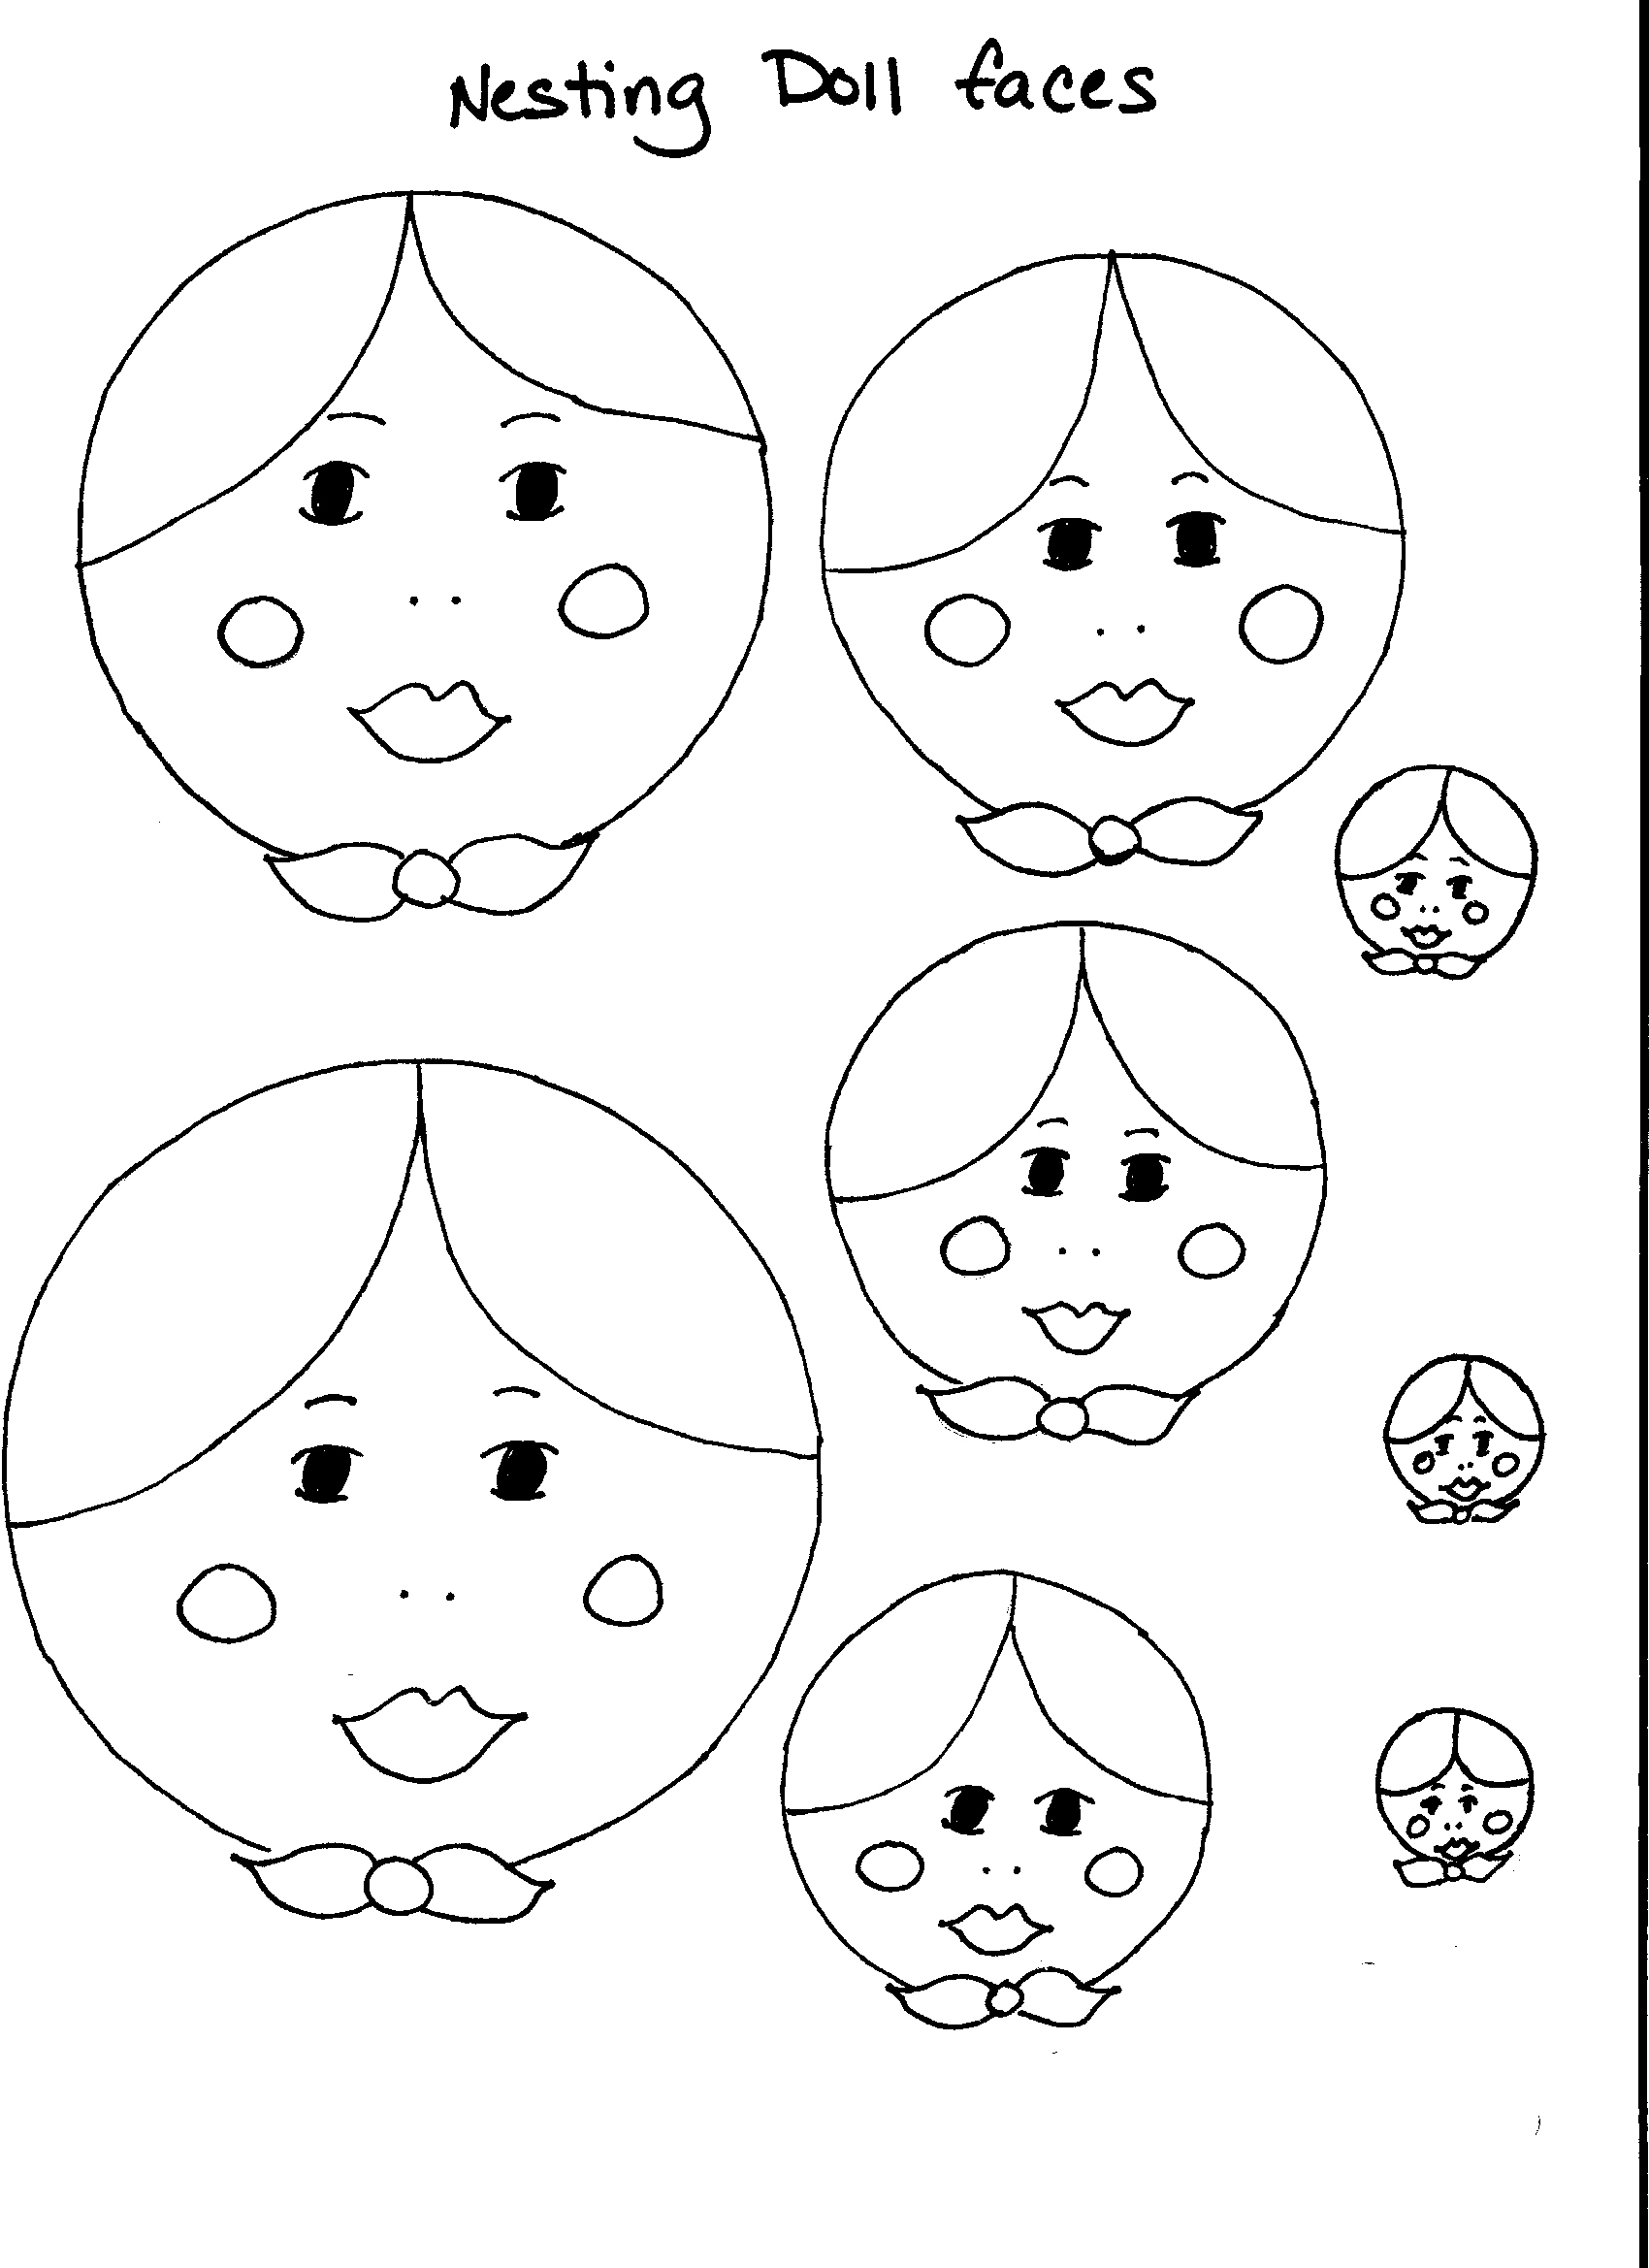 Doll Face Drawing at GetDrawings.com | Free for personal use Doll ...